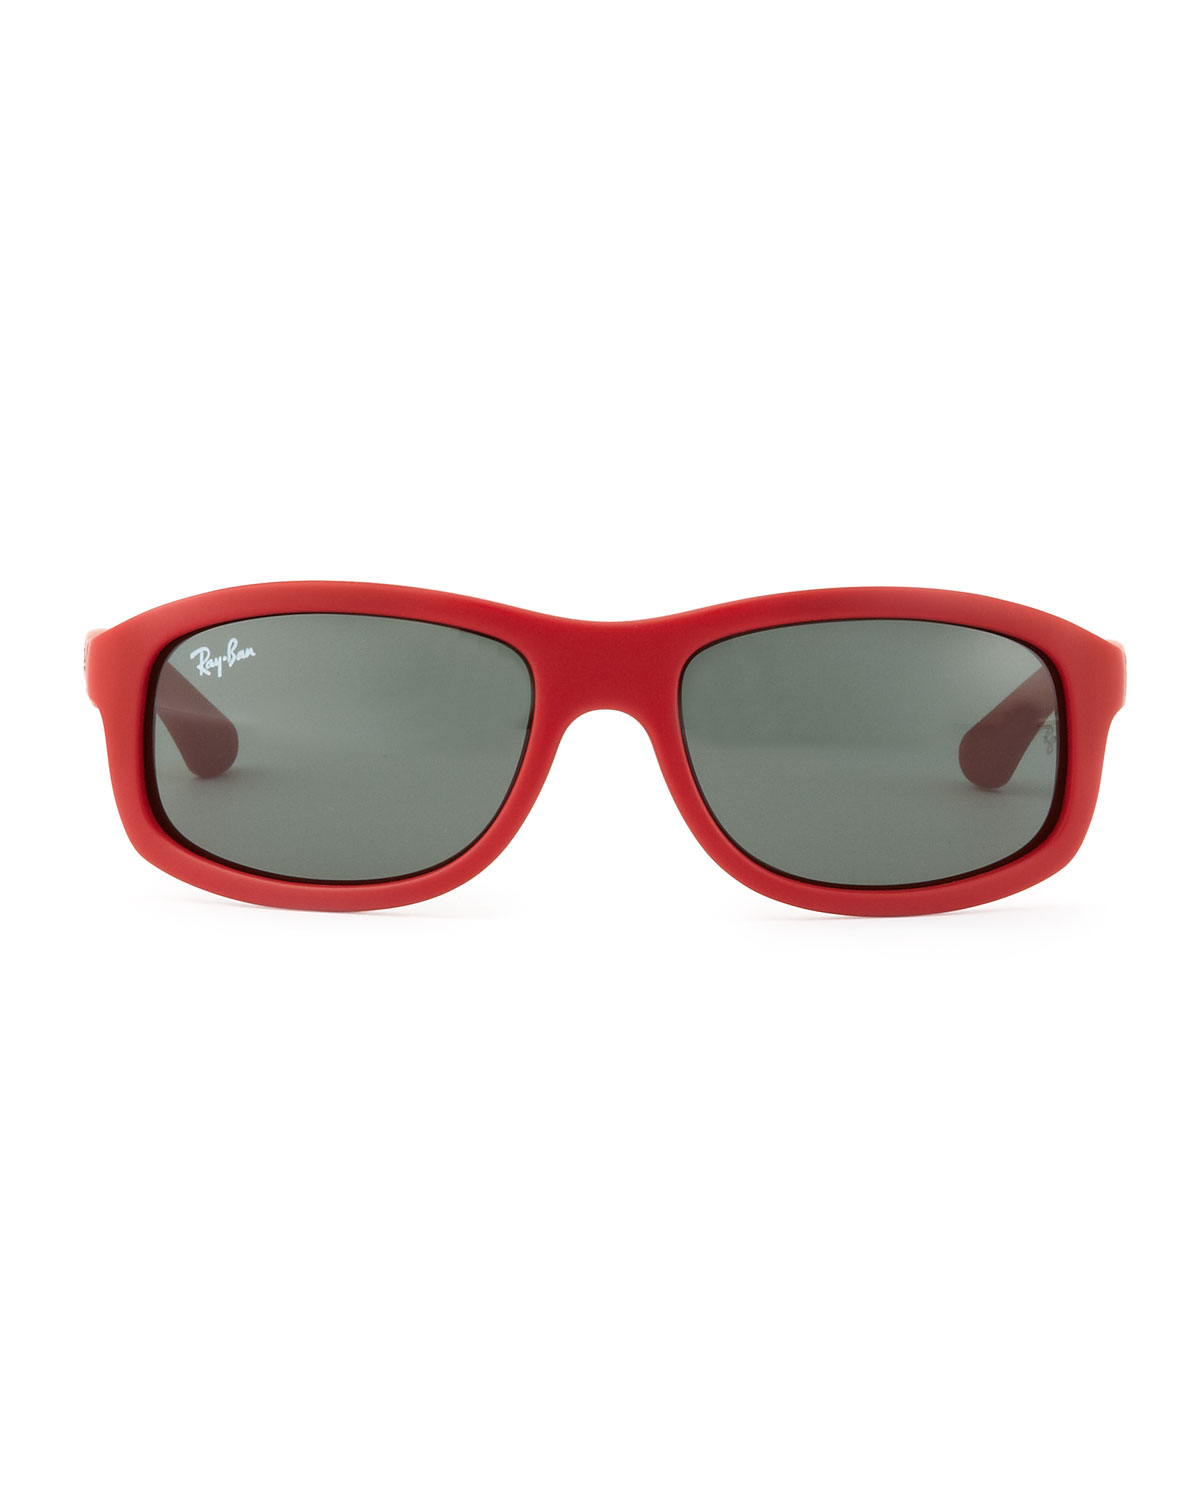 ray ban glasses frames target  ray ban red kids matte sunglasses red  product 1 16506828 2 495446483 normal.jpeg